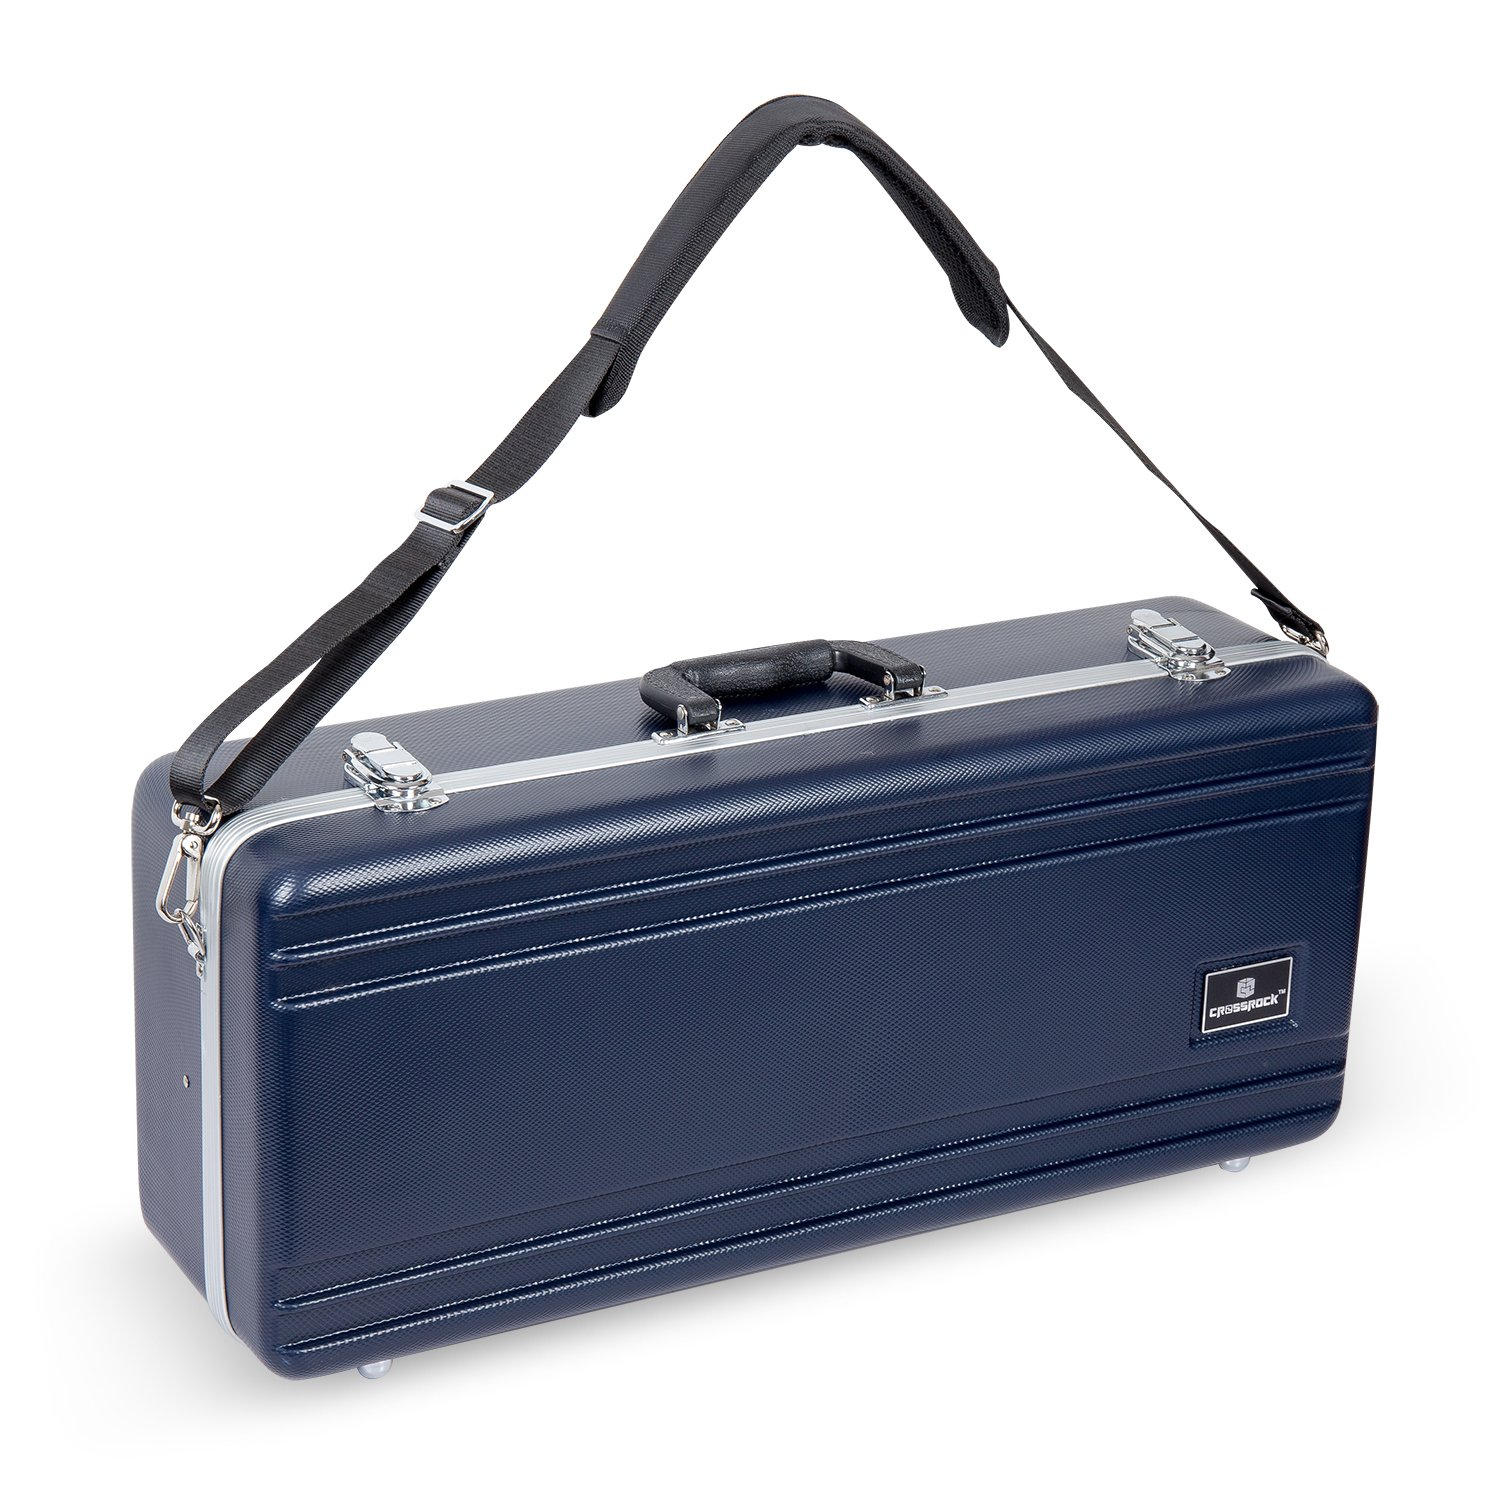 Crossrock CRA860ASBL-R Alto Saxophone Case- Rectangular ABS Molded with Single Shoulder Strap in Blue